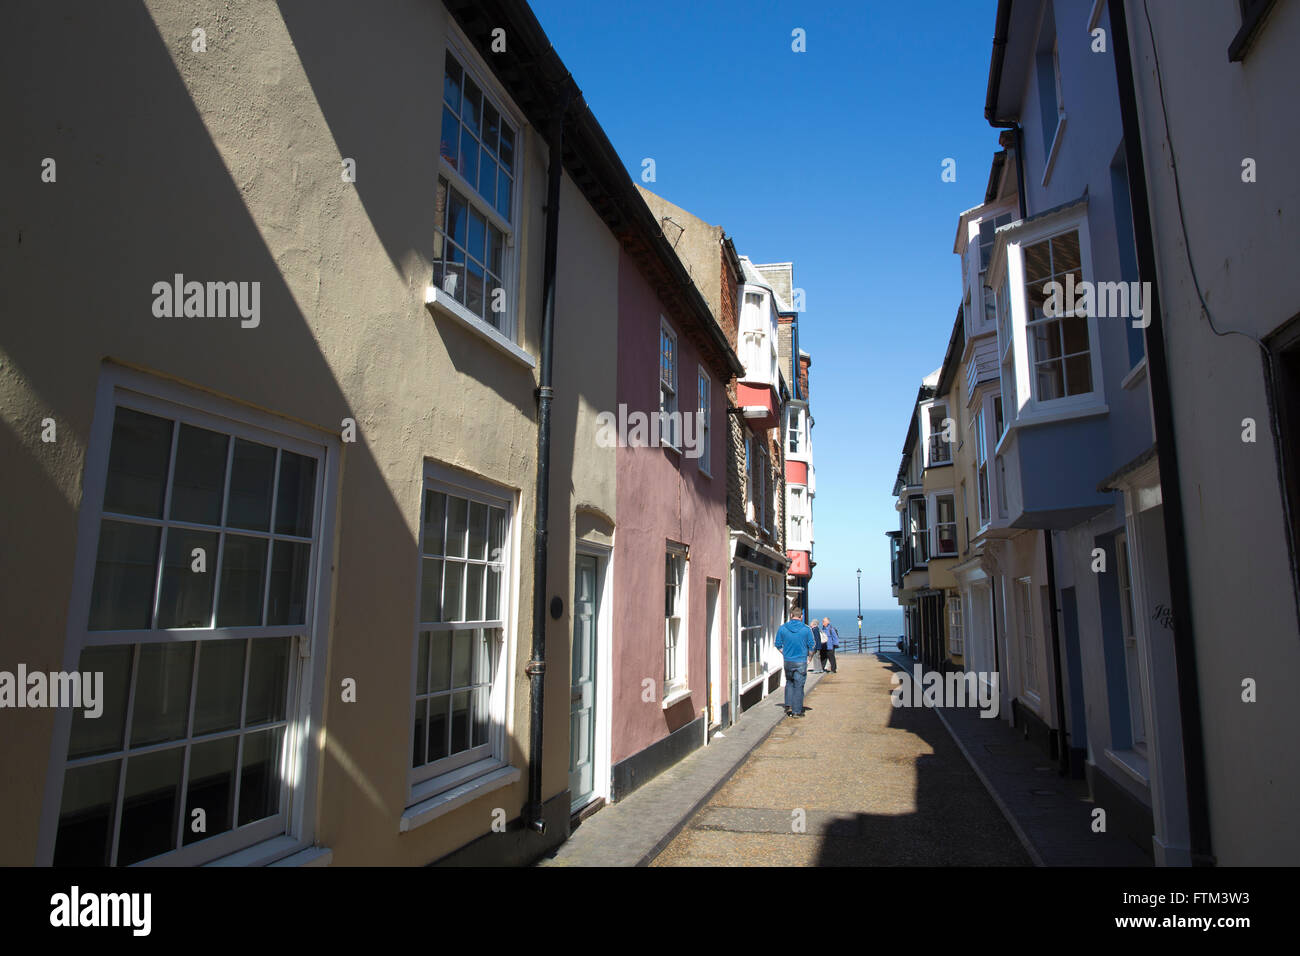 Old fisherman cottages on Jetty Street, Cromer, Norfolk coastal town, East Anglia, England, United Kingdom - Stock Image